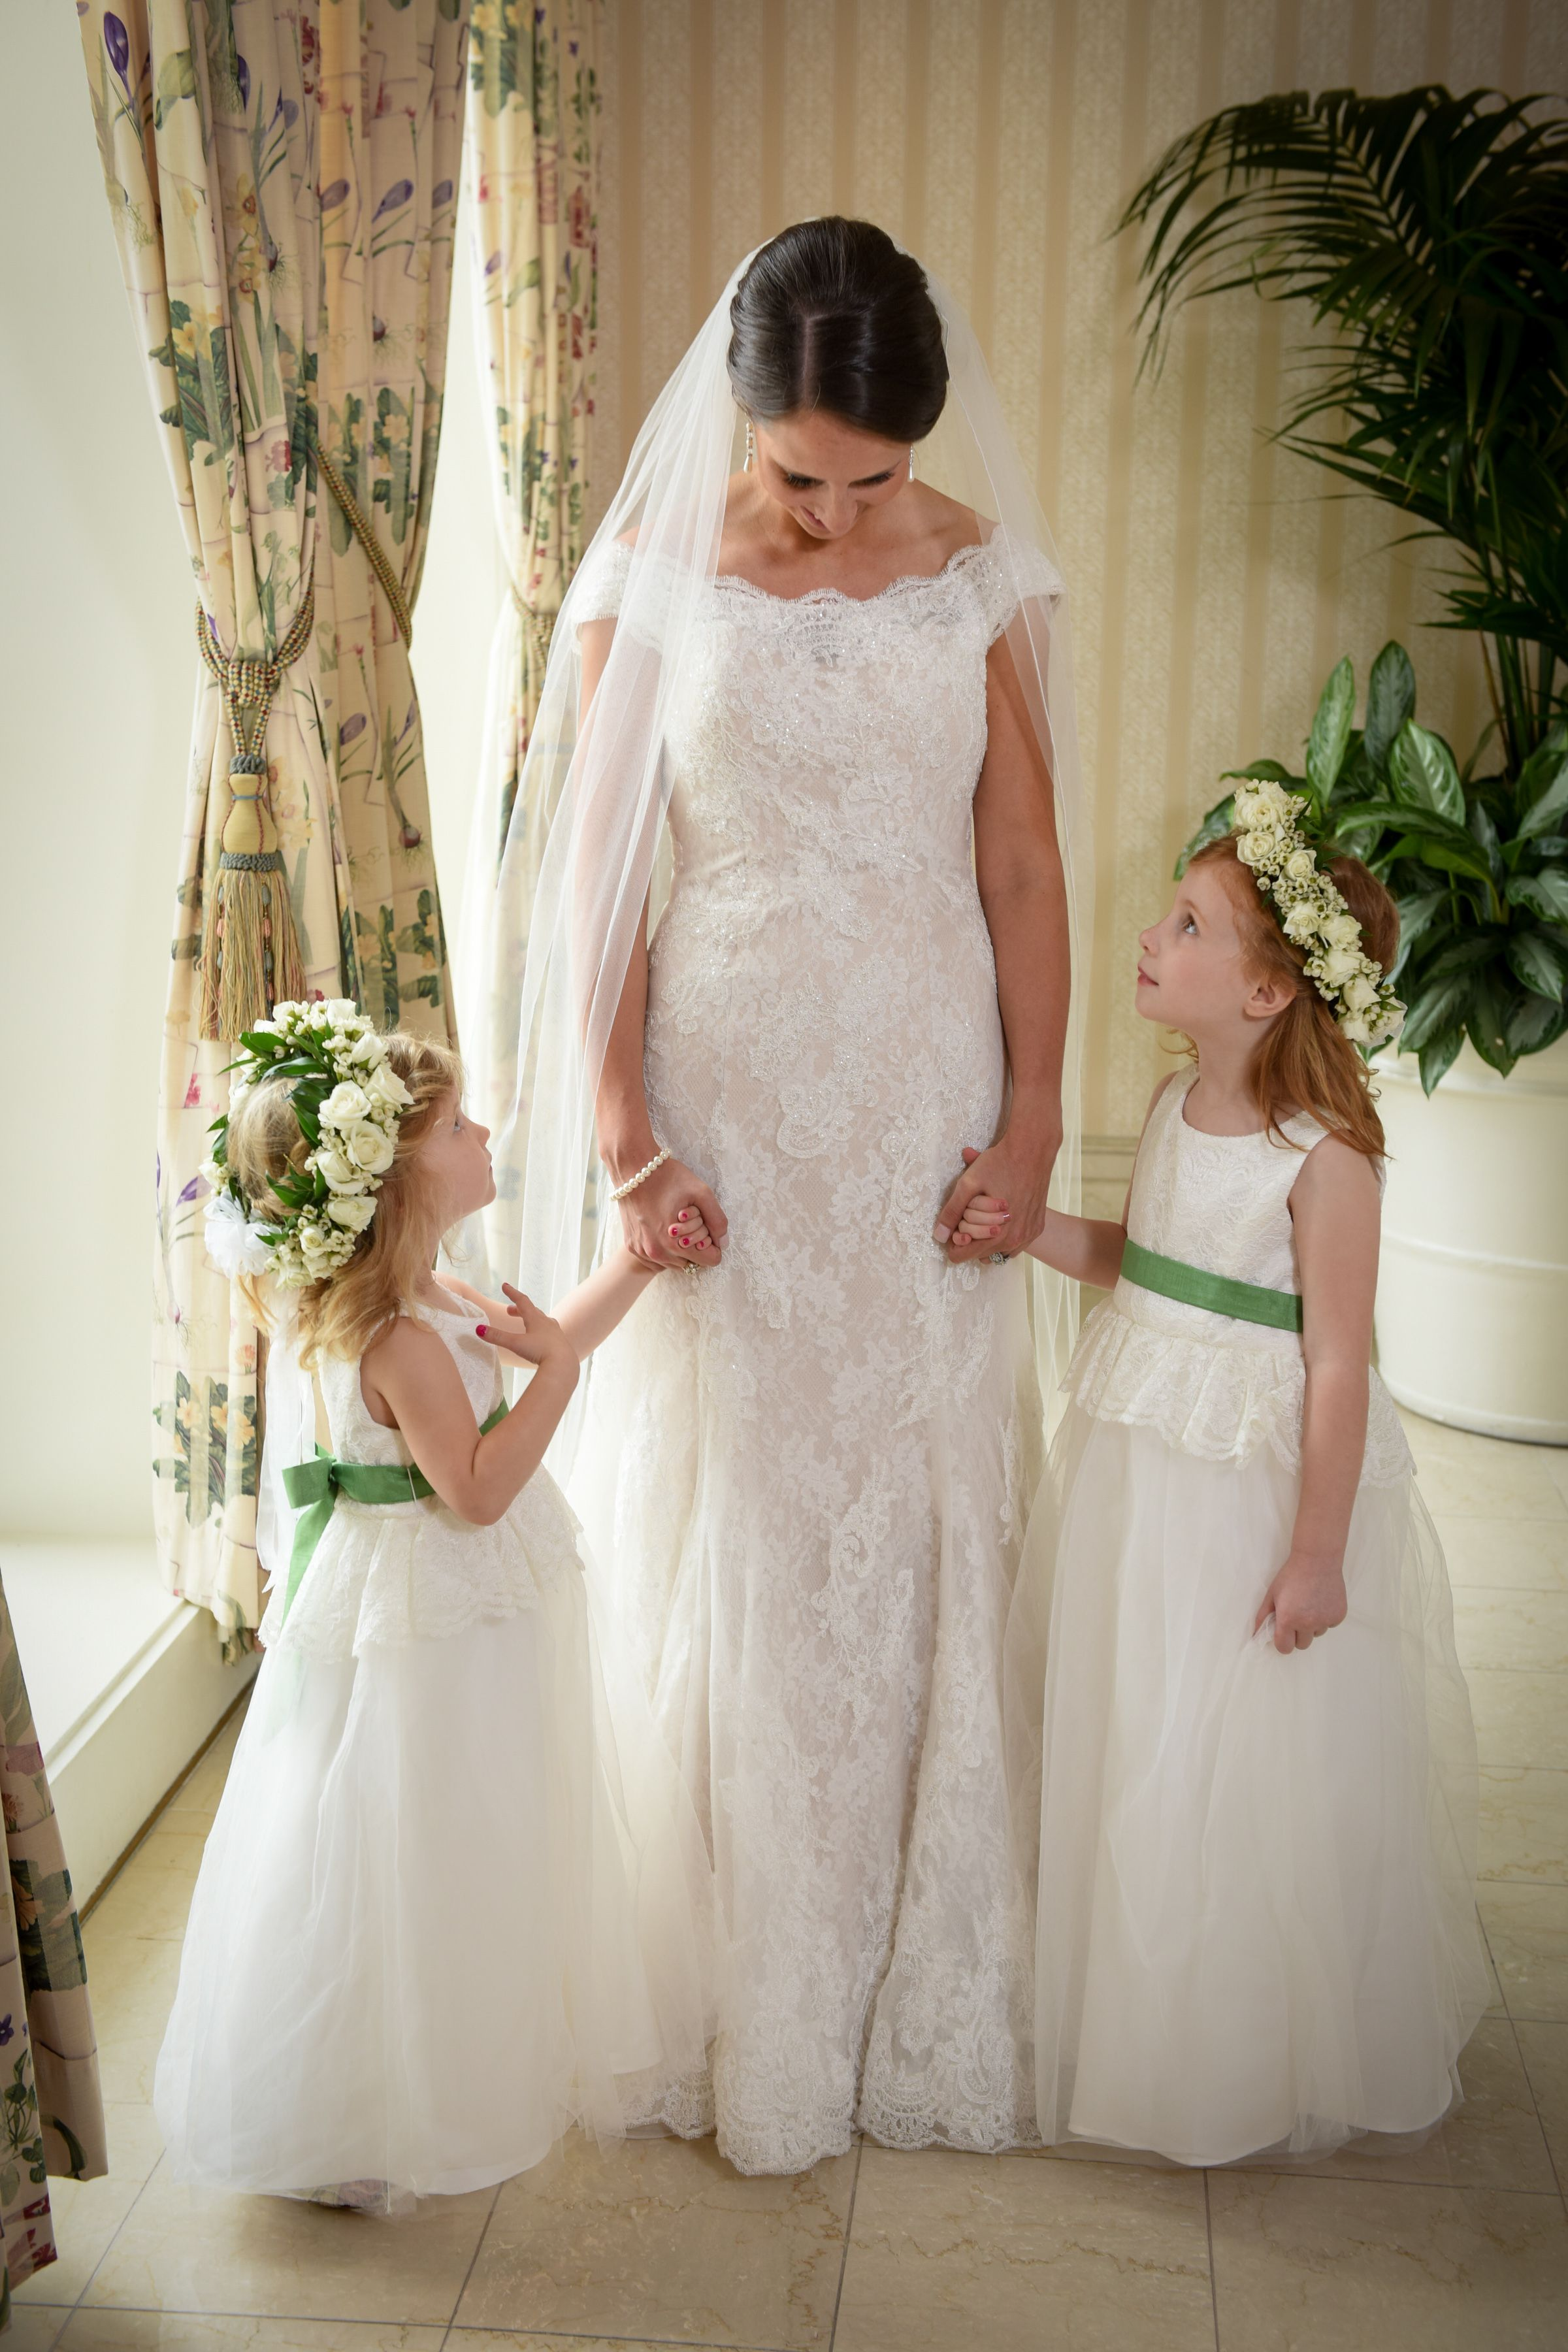 These Precious Flower Girls Are All Dolled Up For This Brides Disneys Fairy Tale Wedding